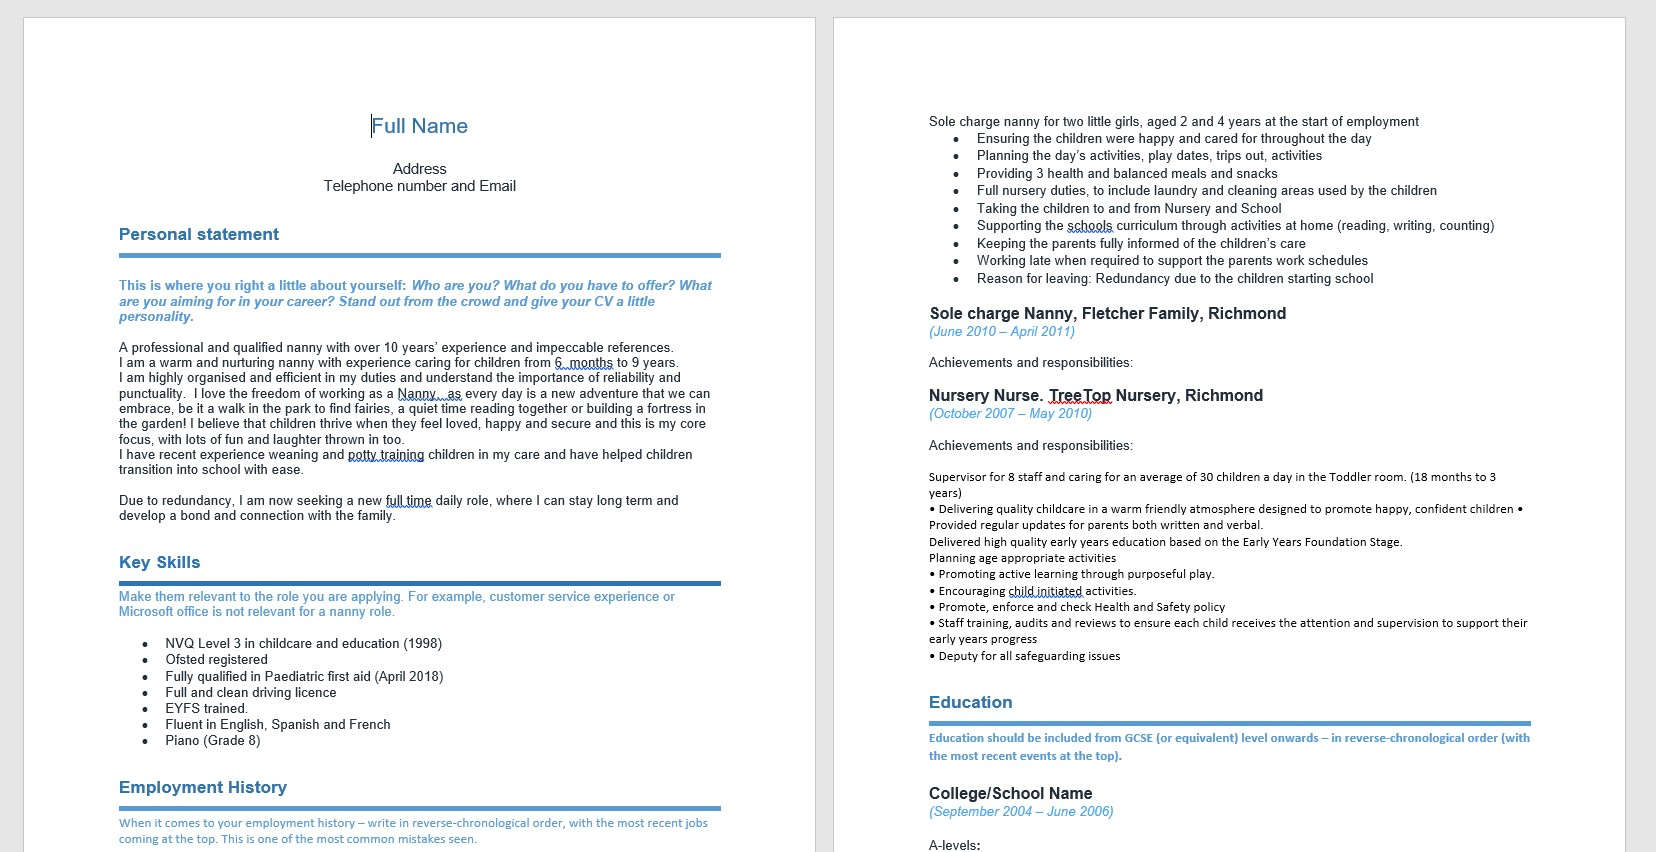 cv for nannies made easy our handy nanny template absolute childcare job duties resume Resume Nanny Job Duties For Resume